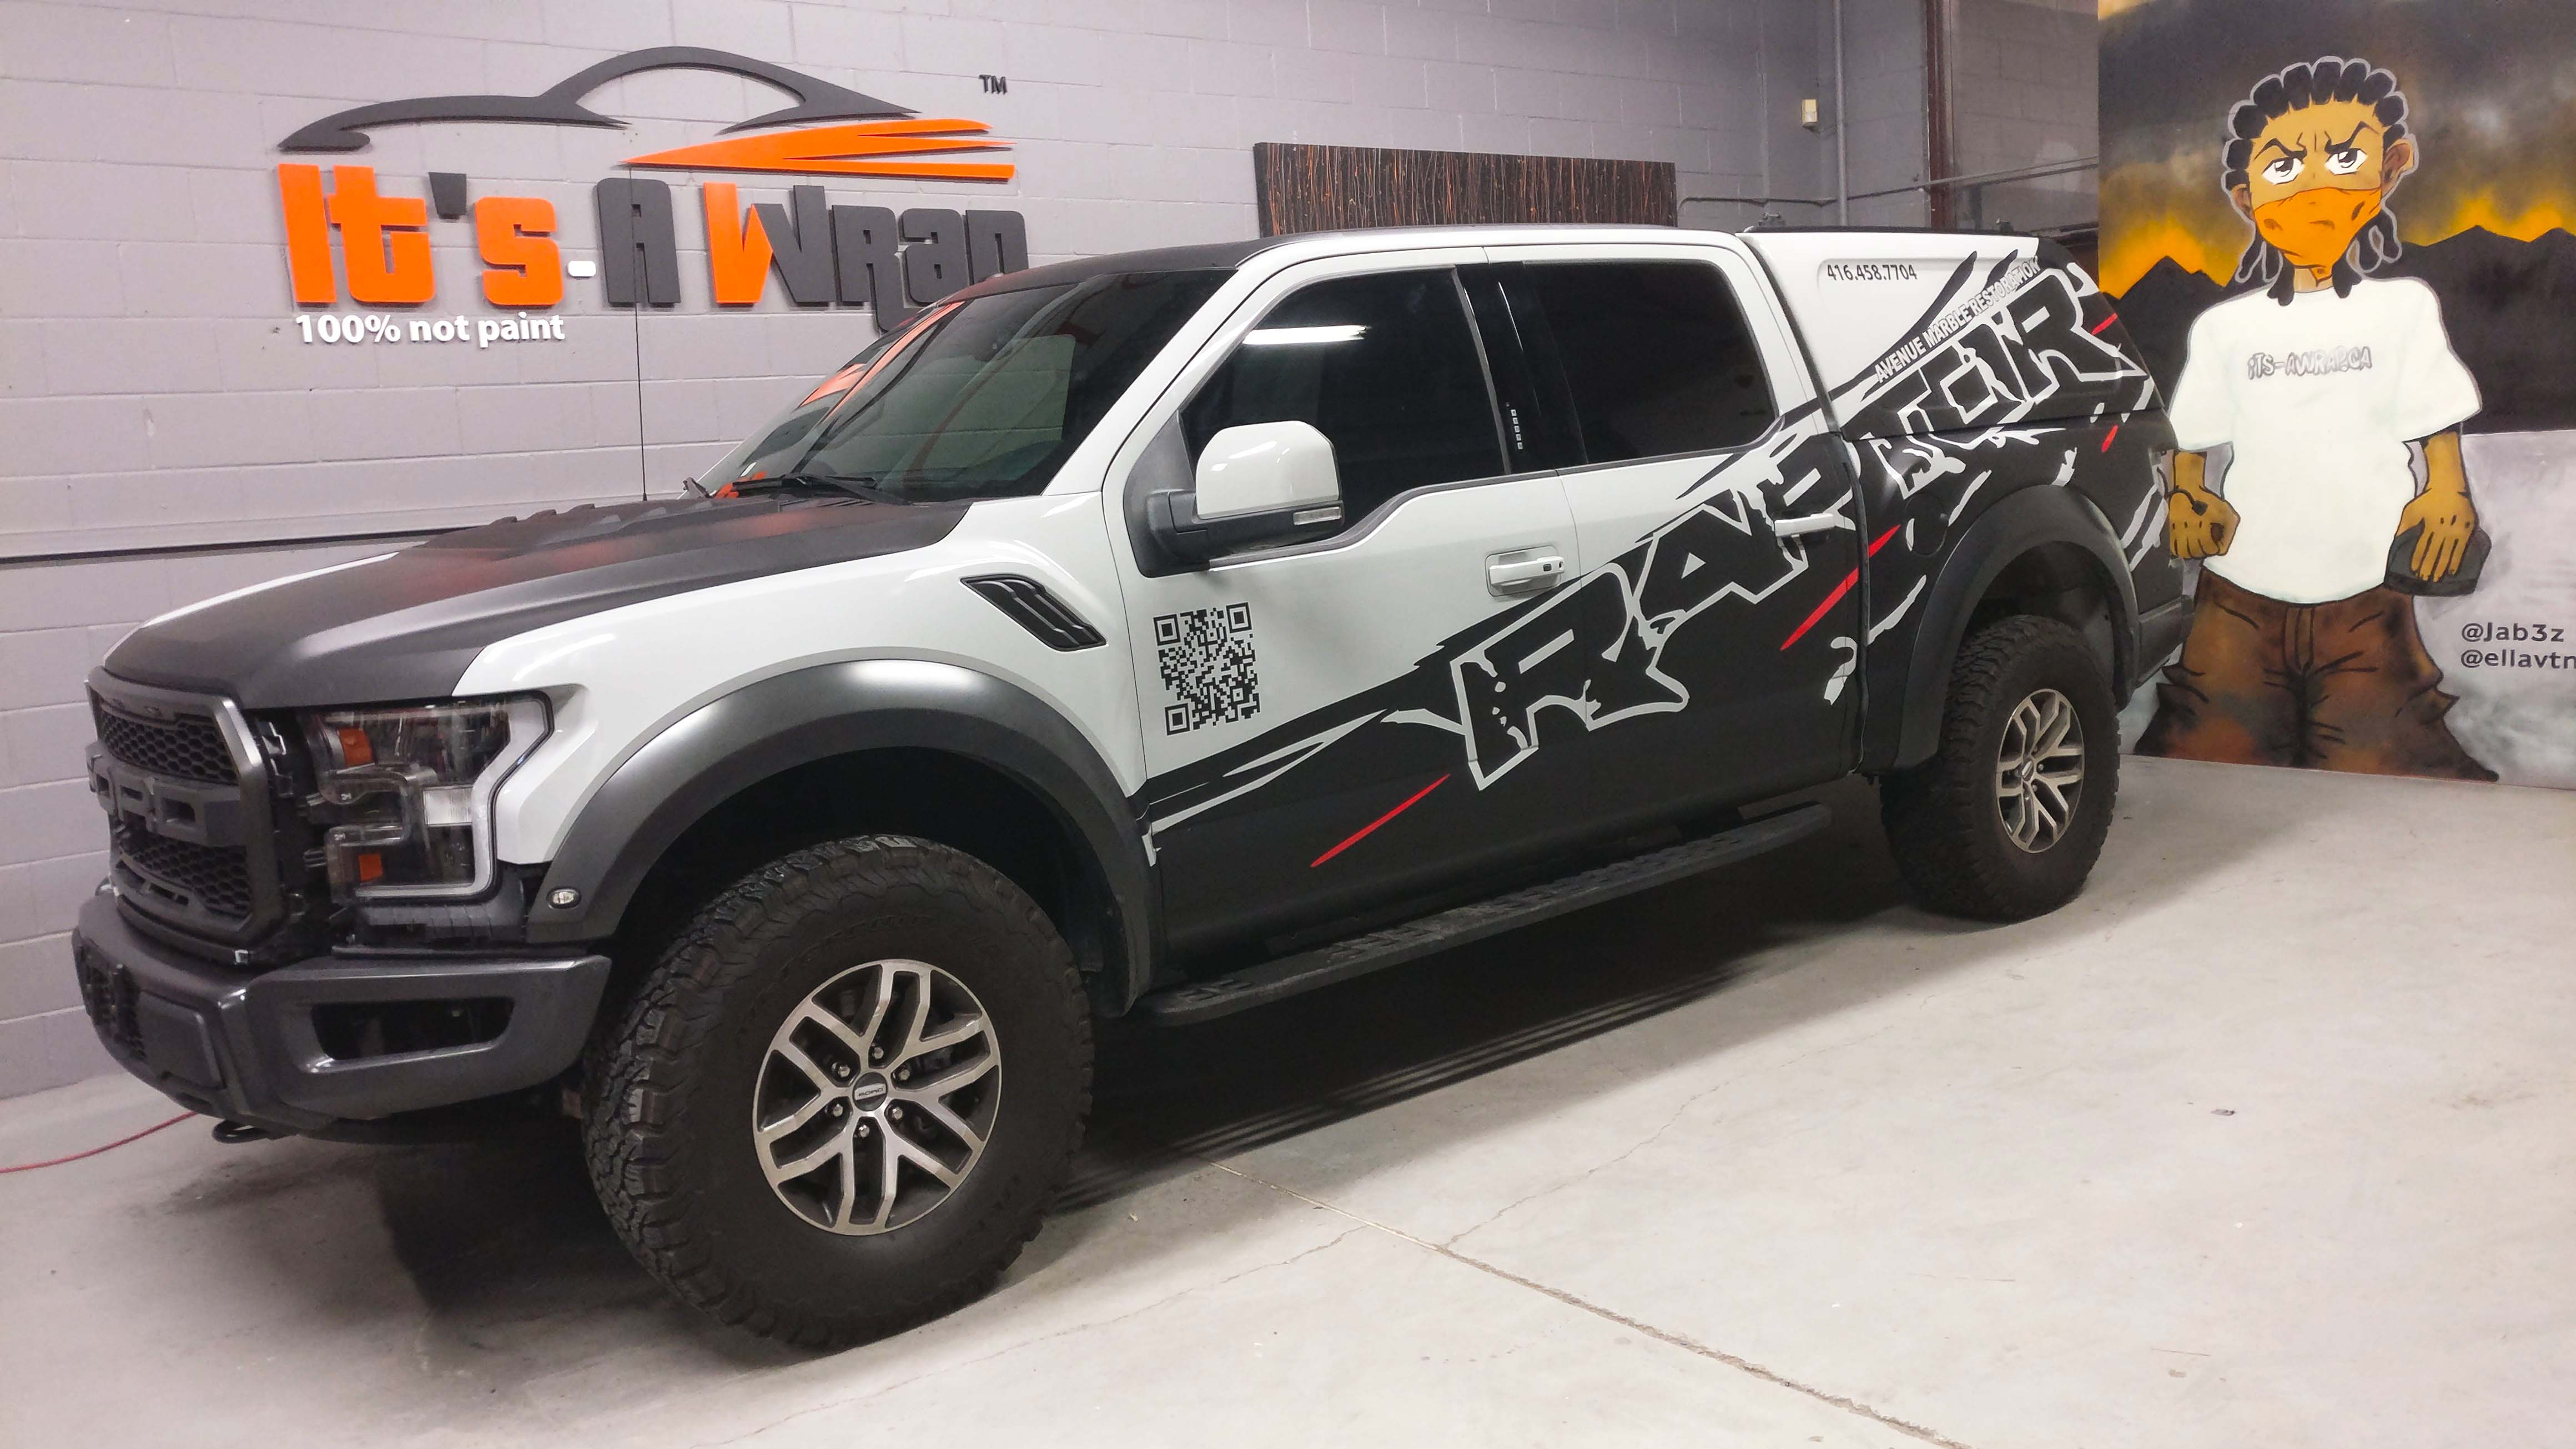 Ford Raptor Custom design Avery matt black wrap